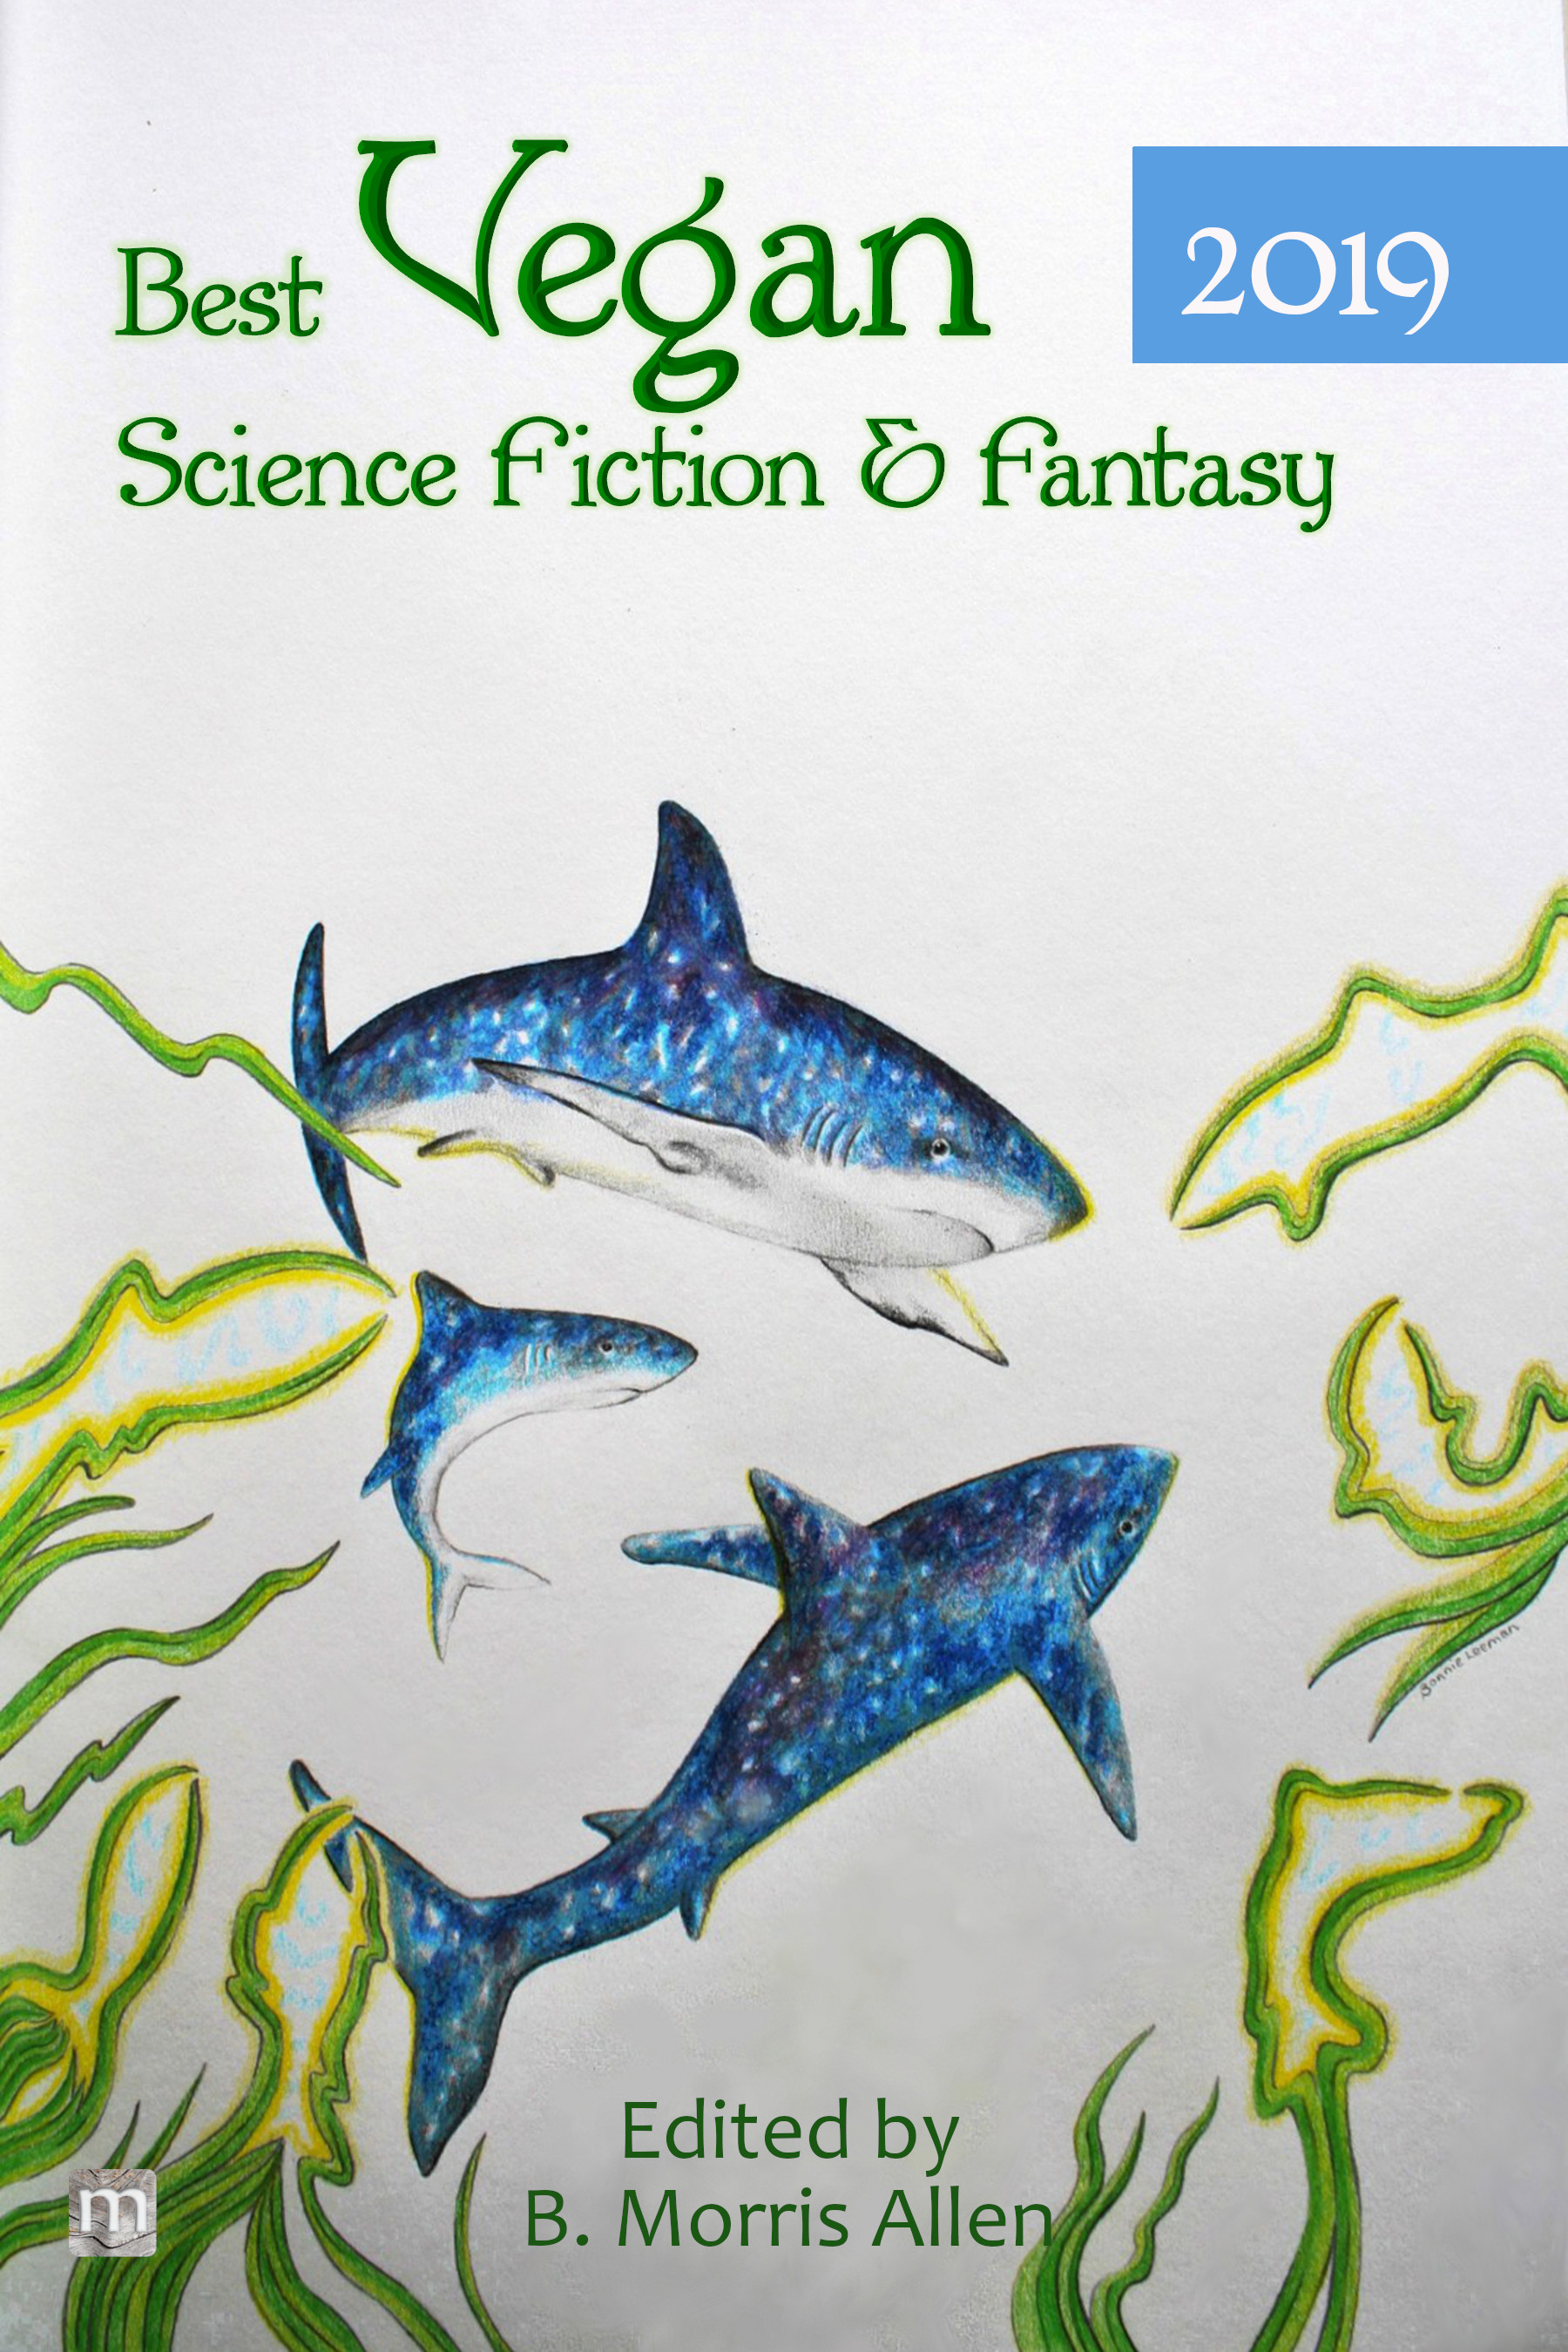 Best Vegan Science Fiction & Fantasy of 2019